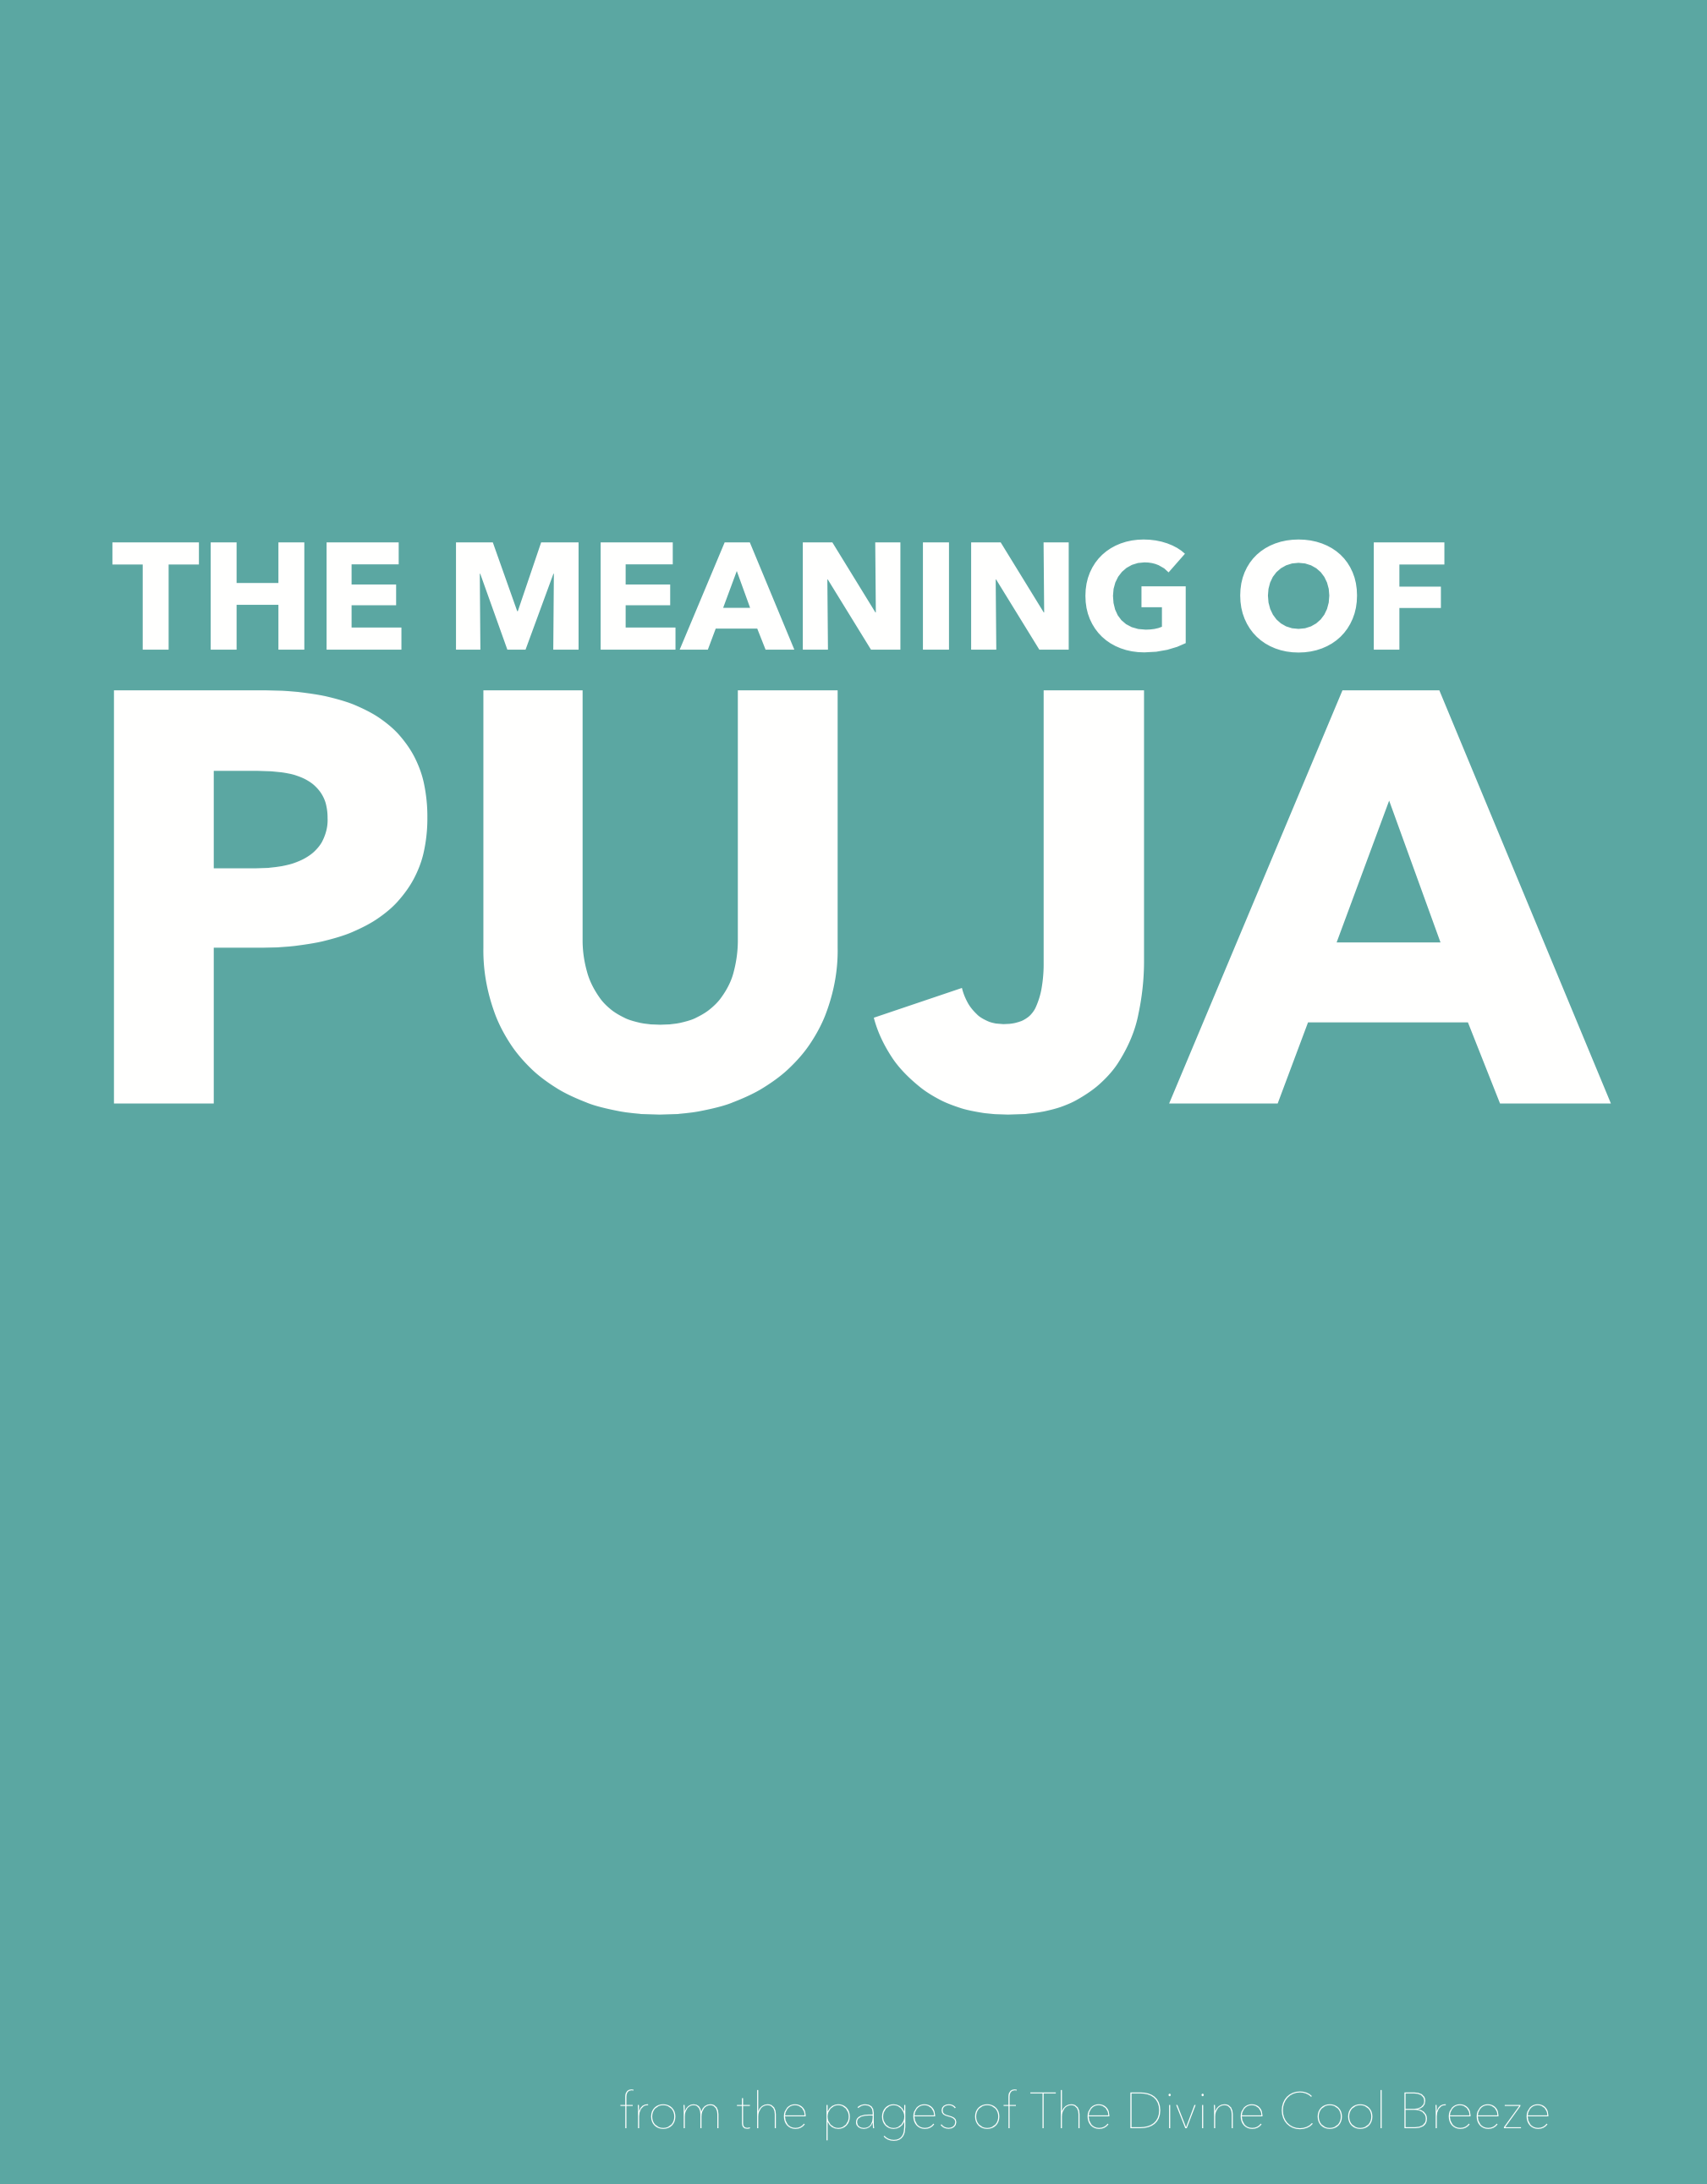 TE MEANING OF PUJA